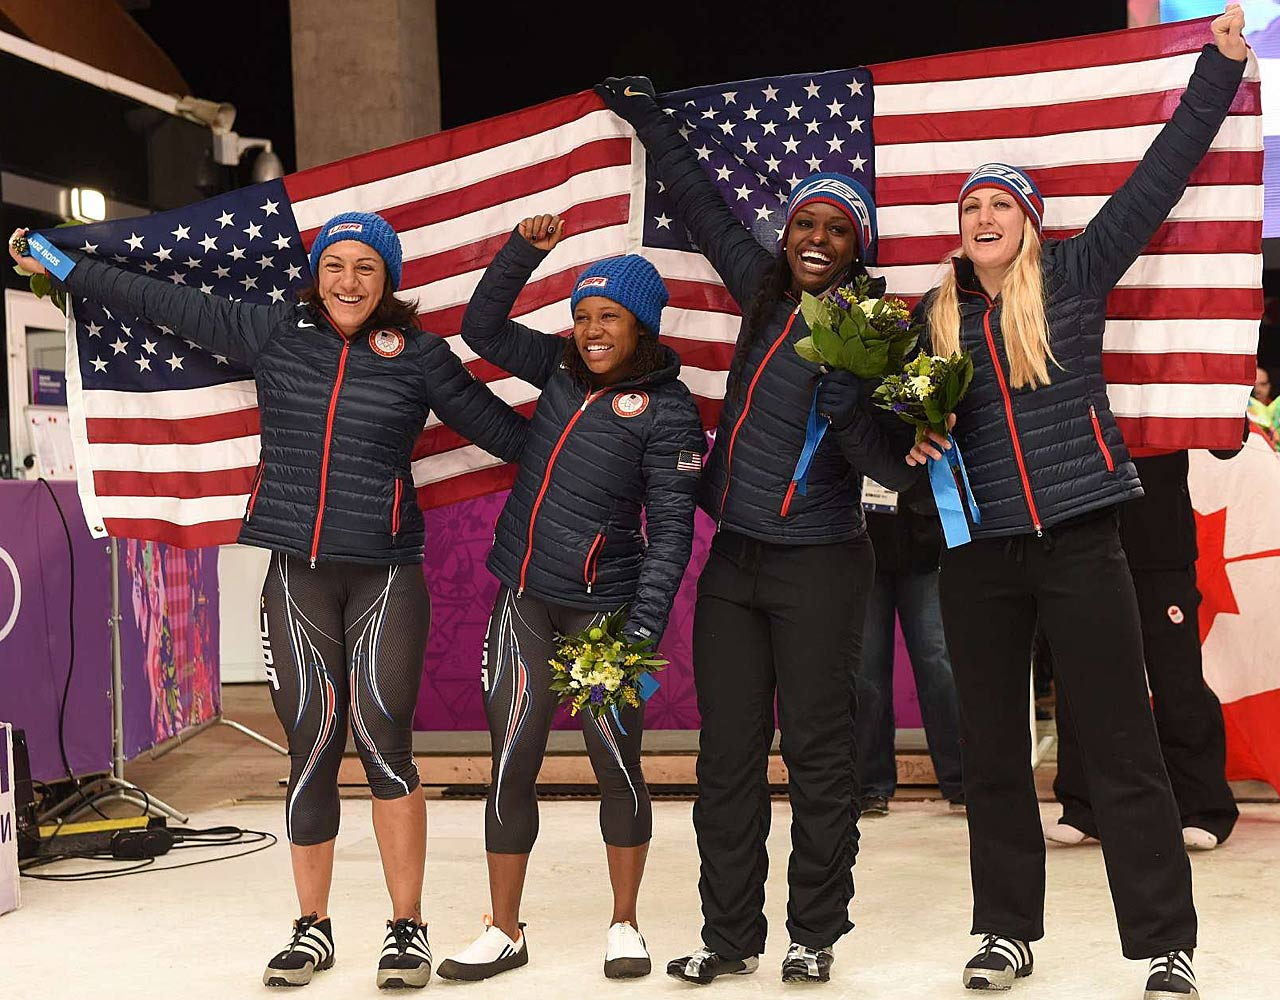 The U.S. won silver and bronze in the women's bobsleigh on Wednesday, featuring, from left,  Elana Meyers and Lauryn Williams (both in second place) and Aja Evans and Jamie Greubel (both in third).